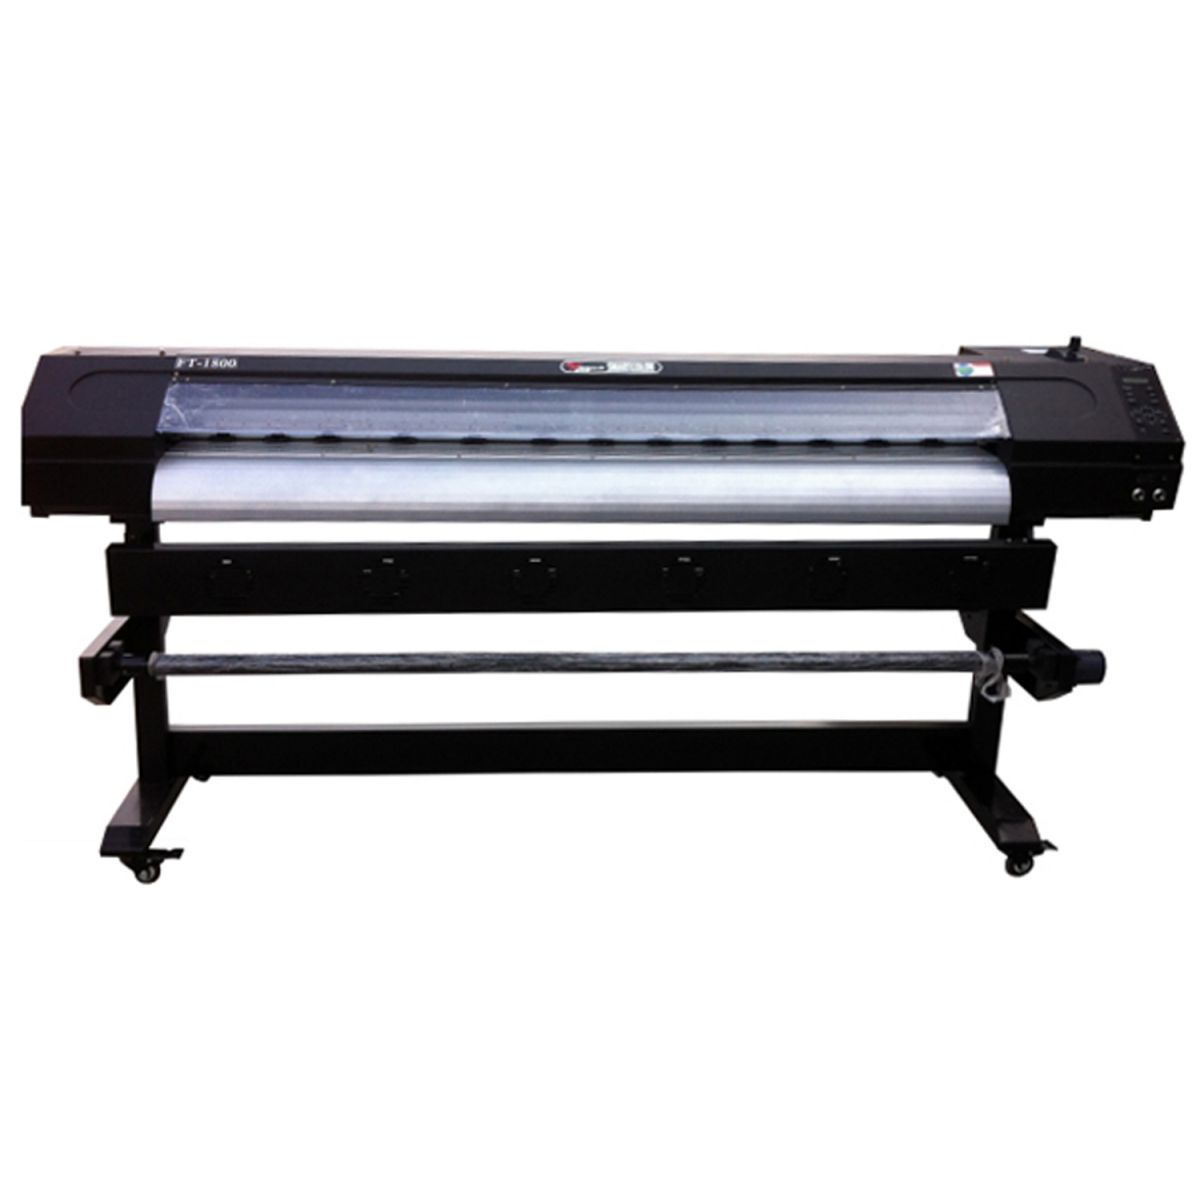 Plotter de Impress�o Digital 1,80m Eco Solvente Cabe�a DX5